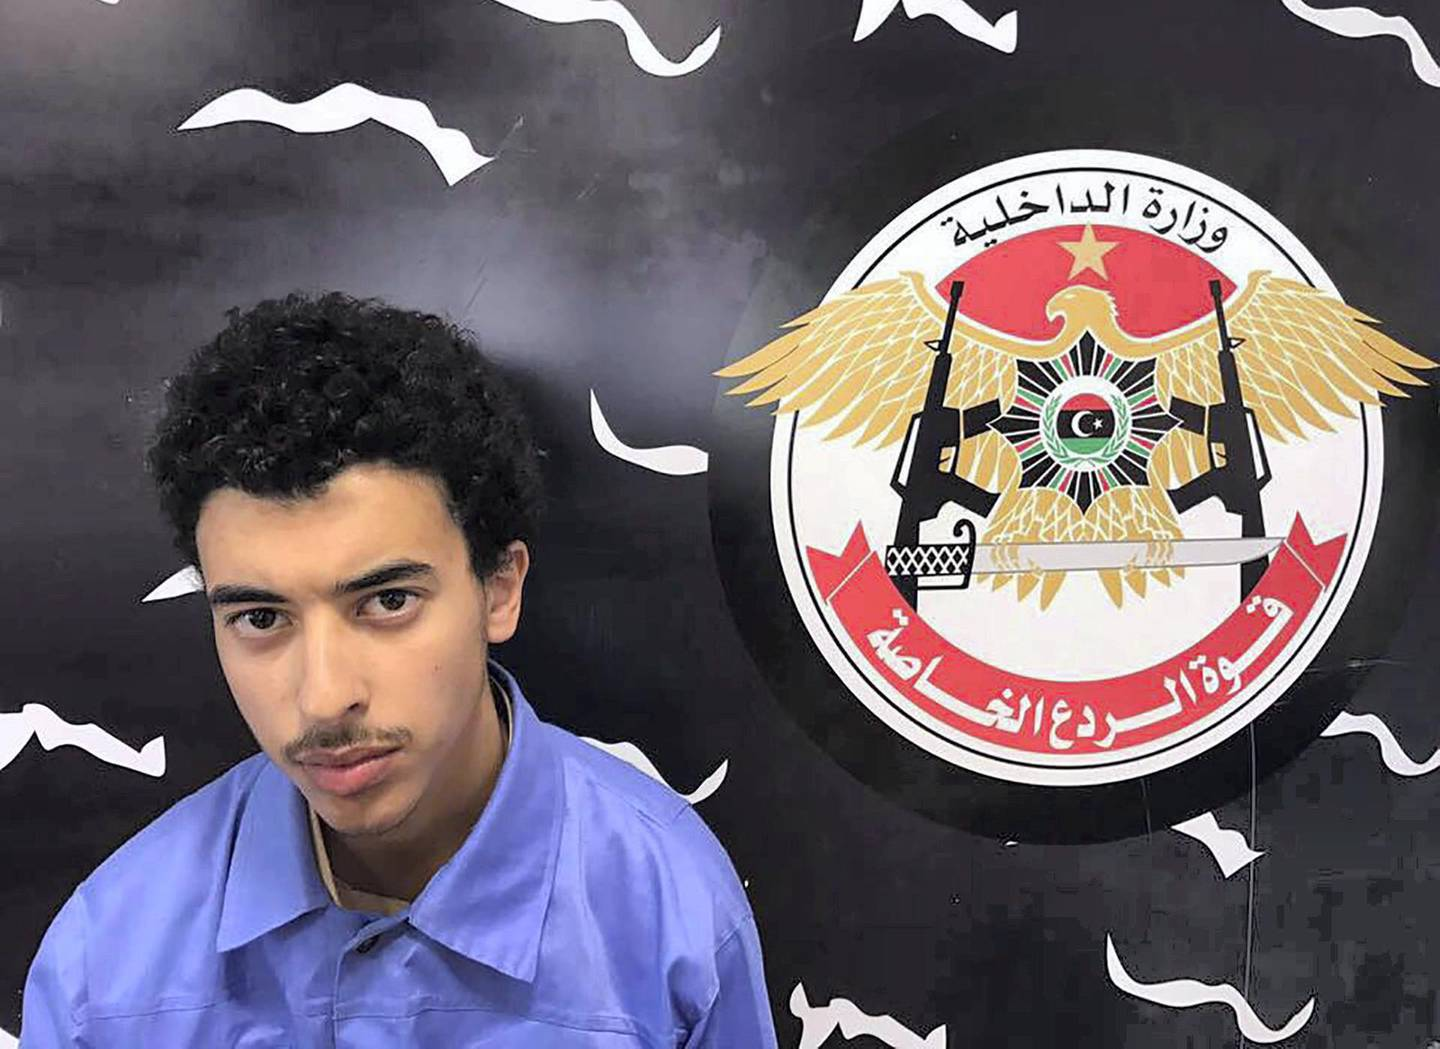 """A photo released on the Facebook page of Libya's Ministry of Interior's Special Deterrence Force on May 24, 2017 claims to shows Hashem Abedi, the brother of the man suspected of carrying out the bombing in the British city of Manchester, after he was detained in Tripoli for alleged links to the Islamic State (IS) group. - Libya arrested a brother and father of Salman Abedi who is suspected of the bombing at a pop concert killing 22 people, including children on May 22, 2017. (Photo by HO / LIBYA'S SPECIAL DETERRENCE FORCE / AFP) / RESTRICTED TO EDITORIAL USE - MANDATORY CREDIT """"AFP PHOTO / LIBYA'S SPECIAL DETERRENCE FORCE"""" - NO MARKETING NO ADVERTISING CAMPAIGNS - DISTRIBUTED AS A SERVICE TO CLIENTS"""